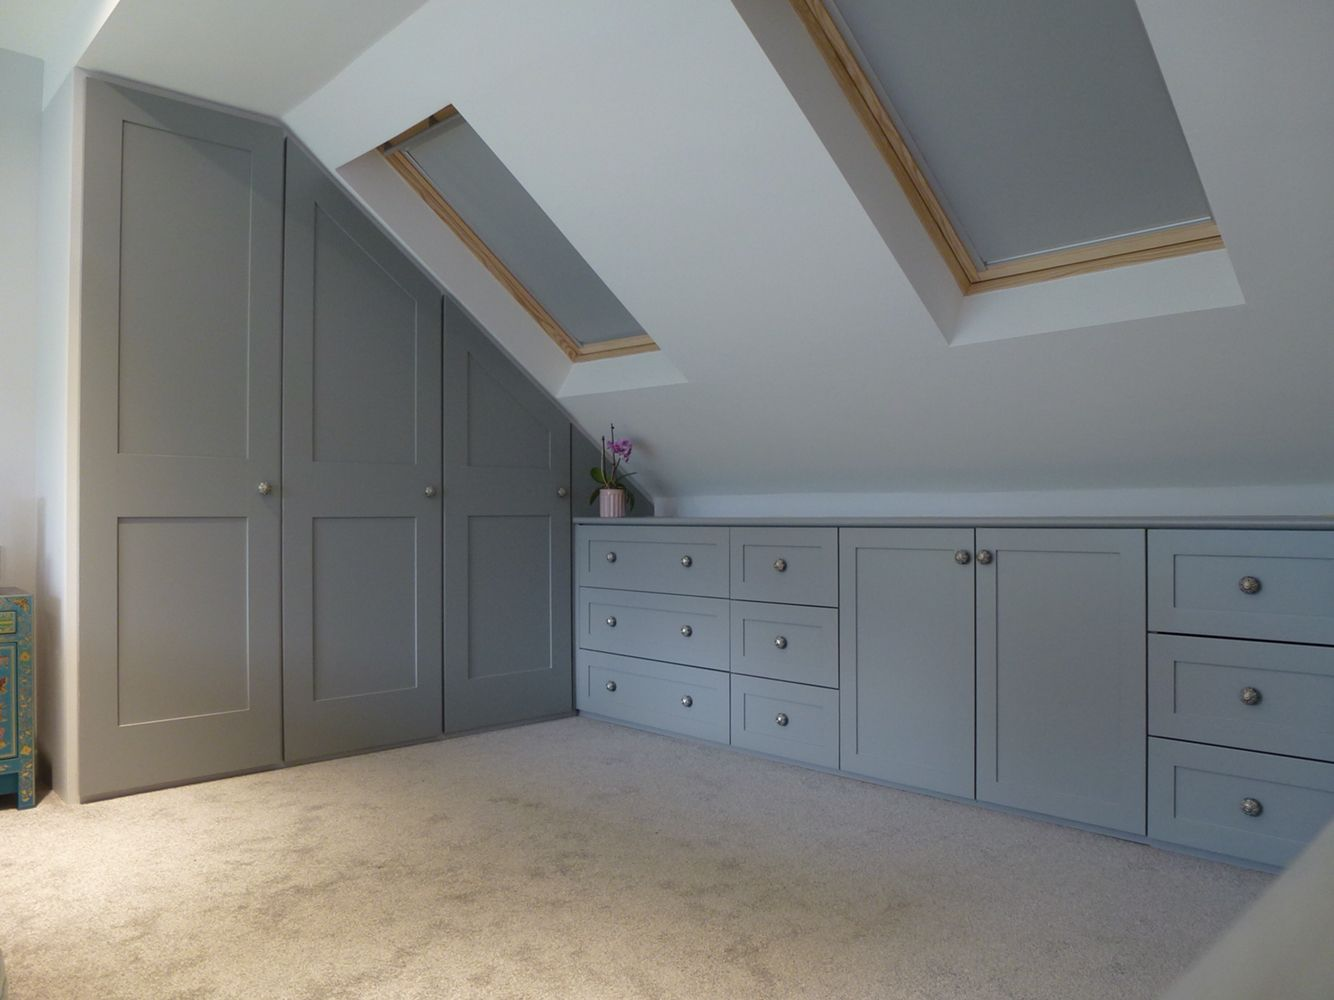 Fitted wardrobes built into loft conversion. Storage